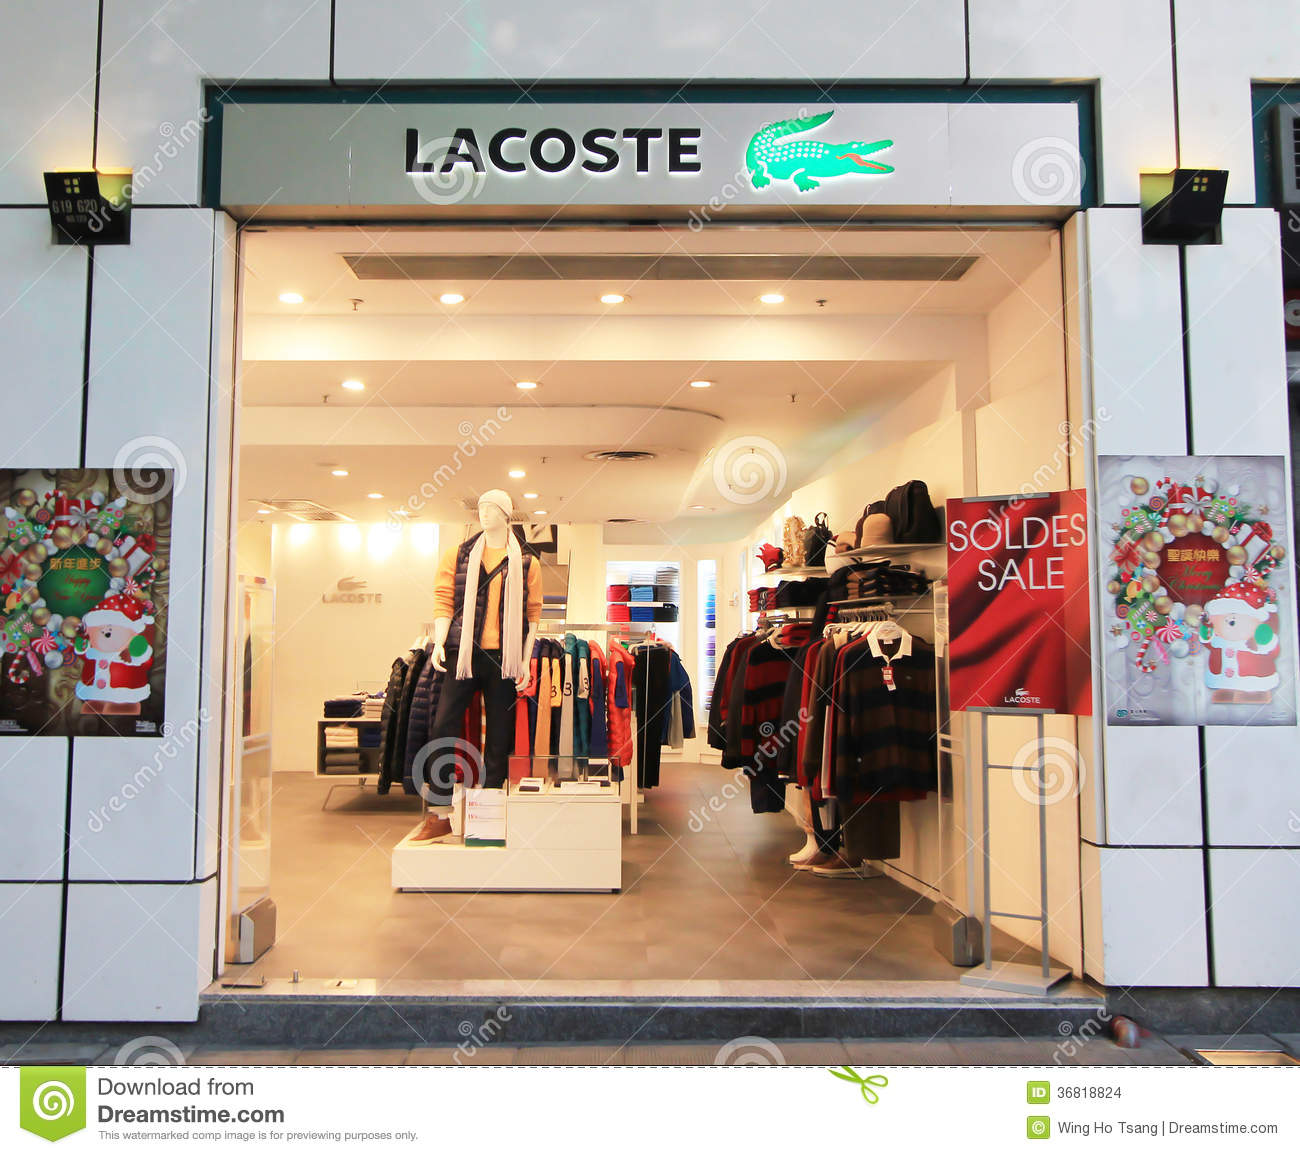 Hong Kong Shopping: Lacoste Shop In Hong Kong Editorial Stock Image